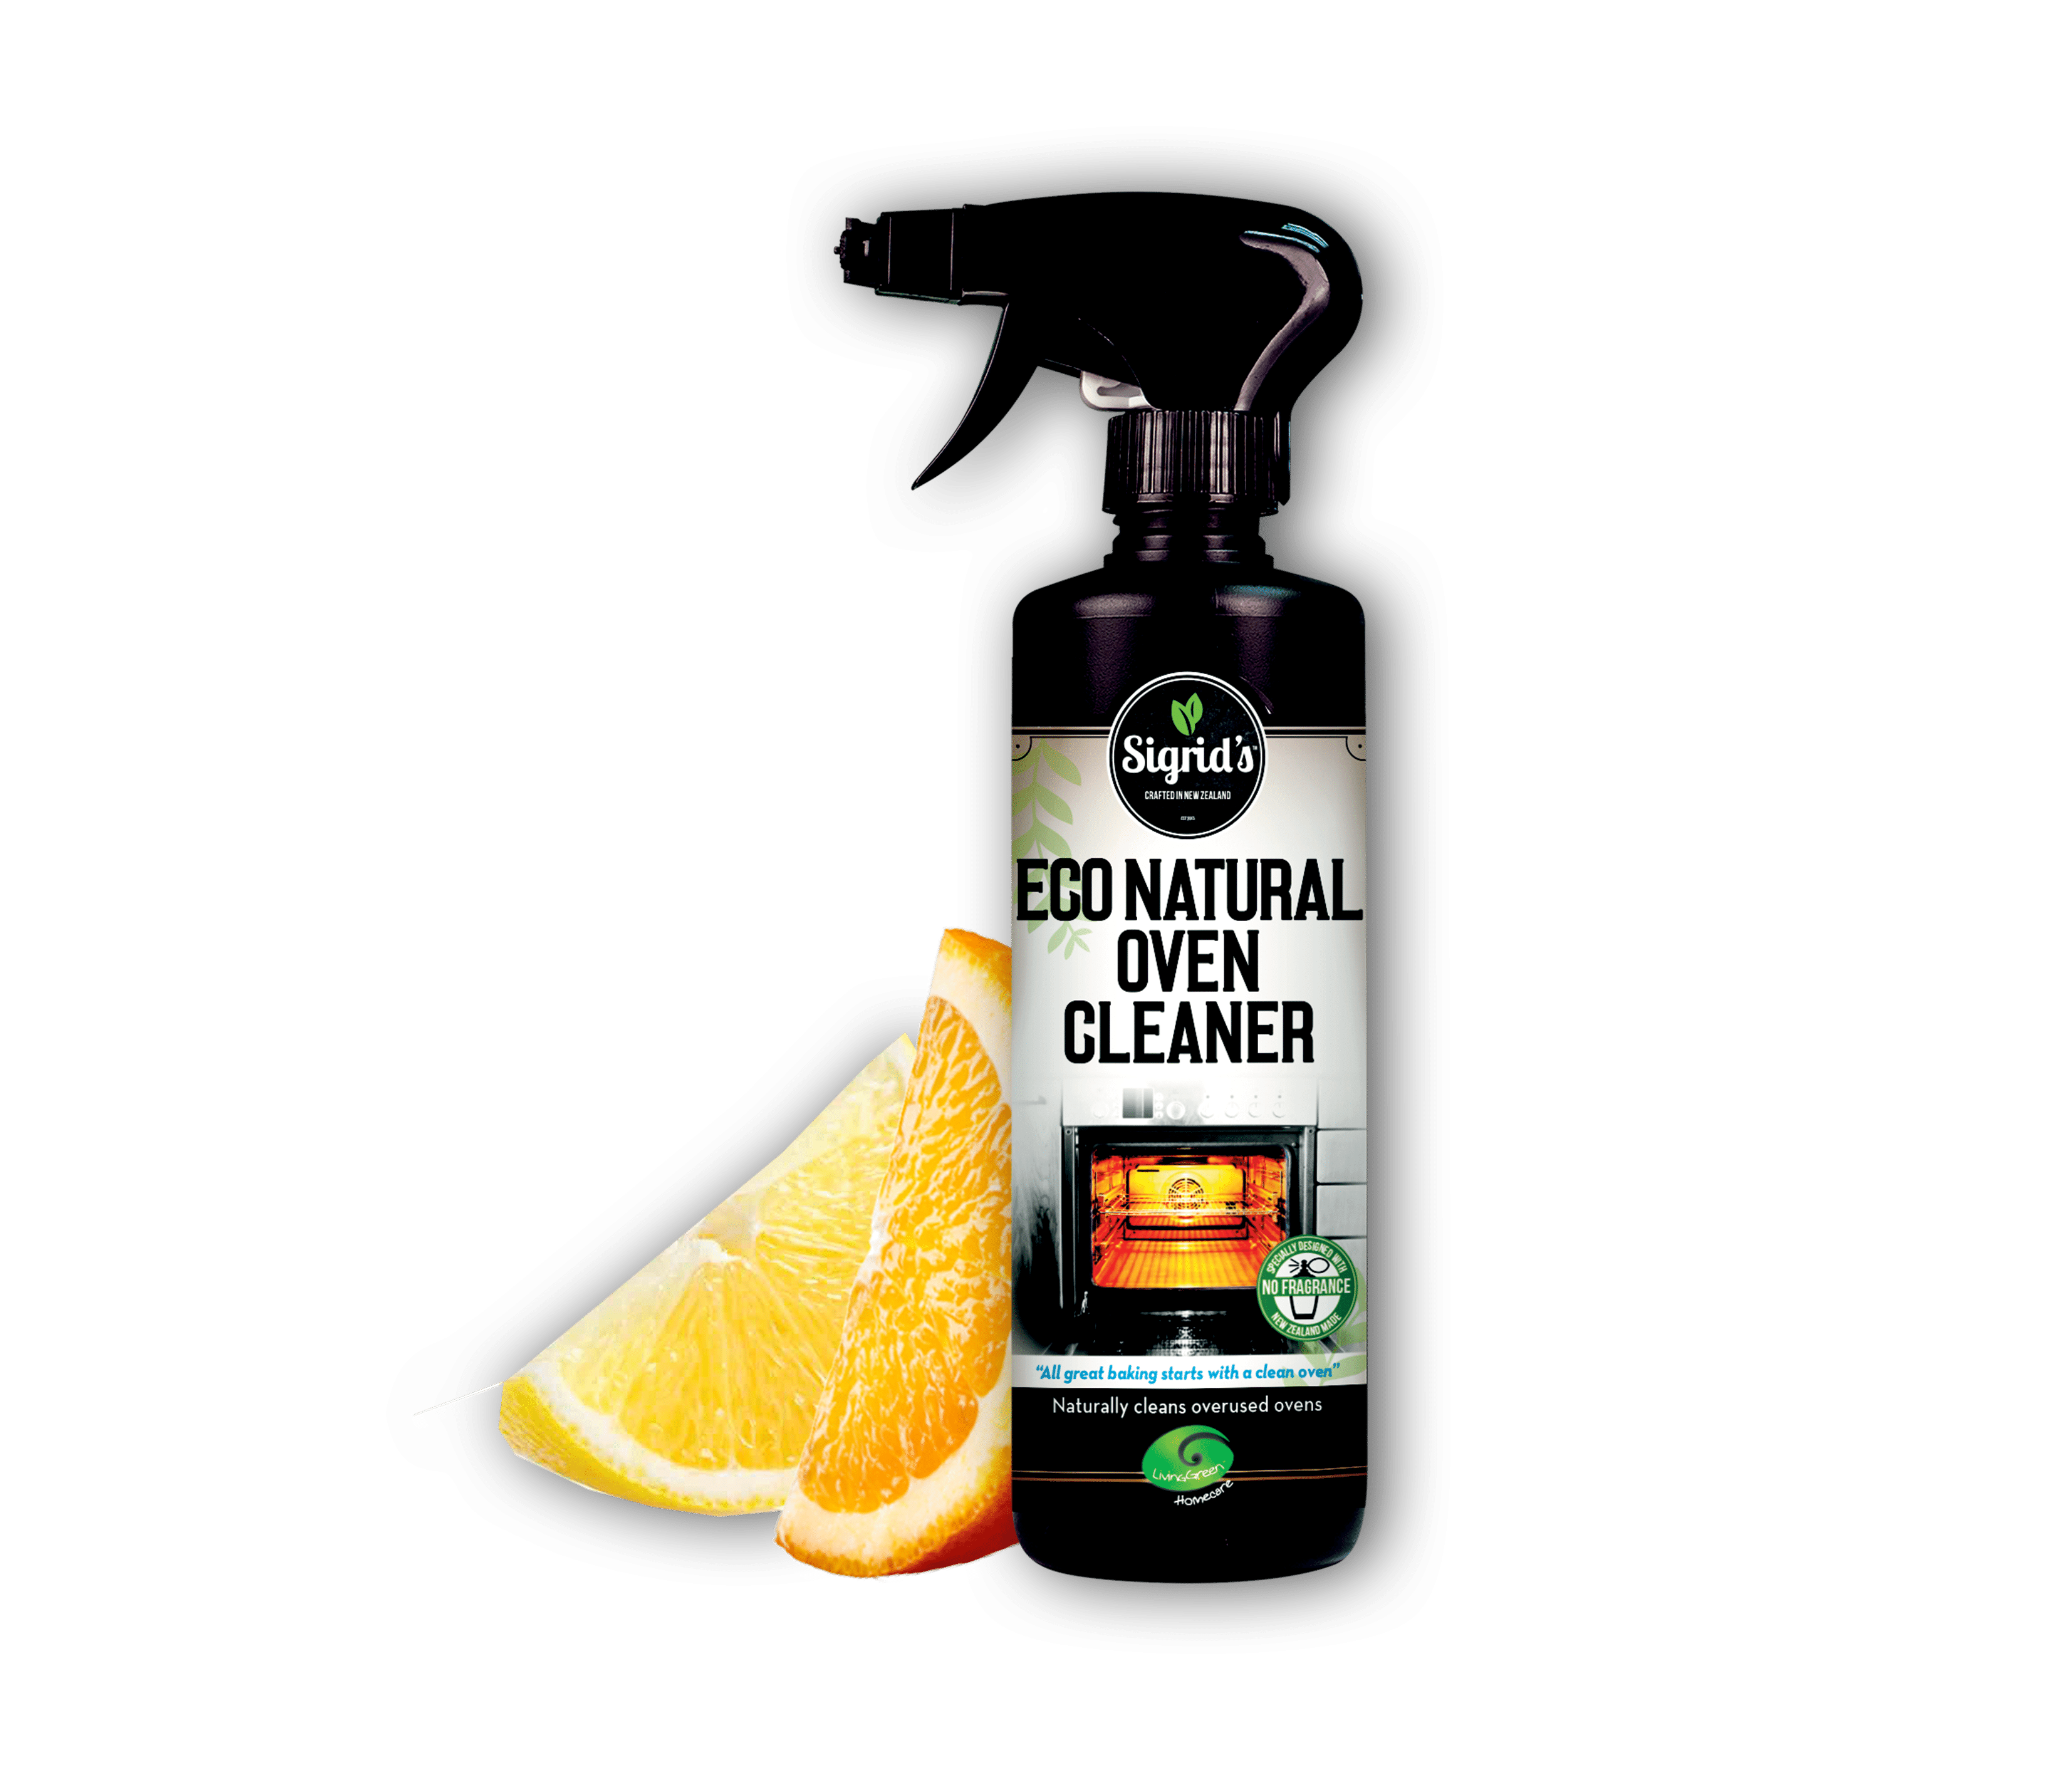 What Is The Best Kind Of Cleaning Agent To Use For